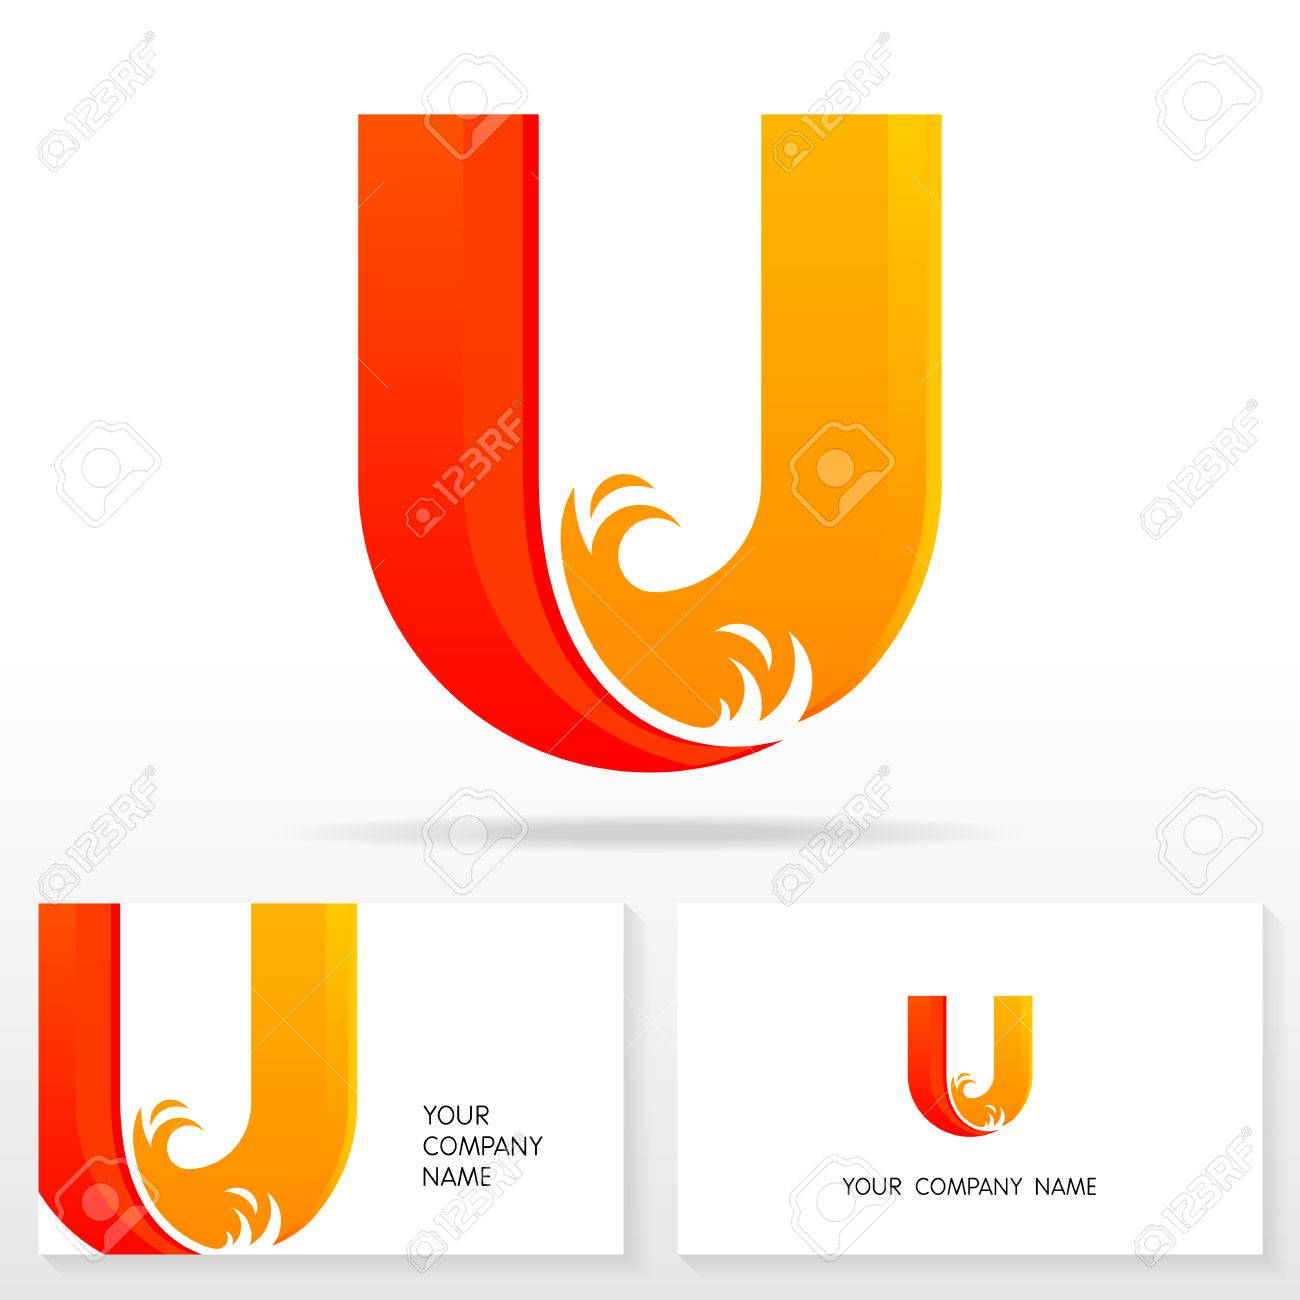 Letter u logo icon design template elements vector illustration letter u logo icon design template elements vector illustration letter u logo icon design vector flashek Image collections